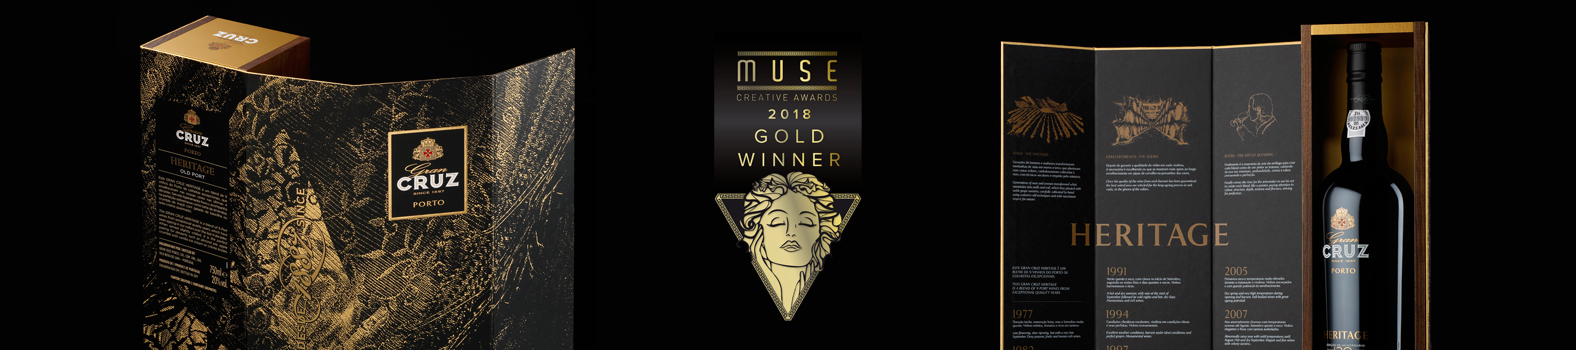 Omdesign scores again at Muse Creative Awards